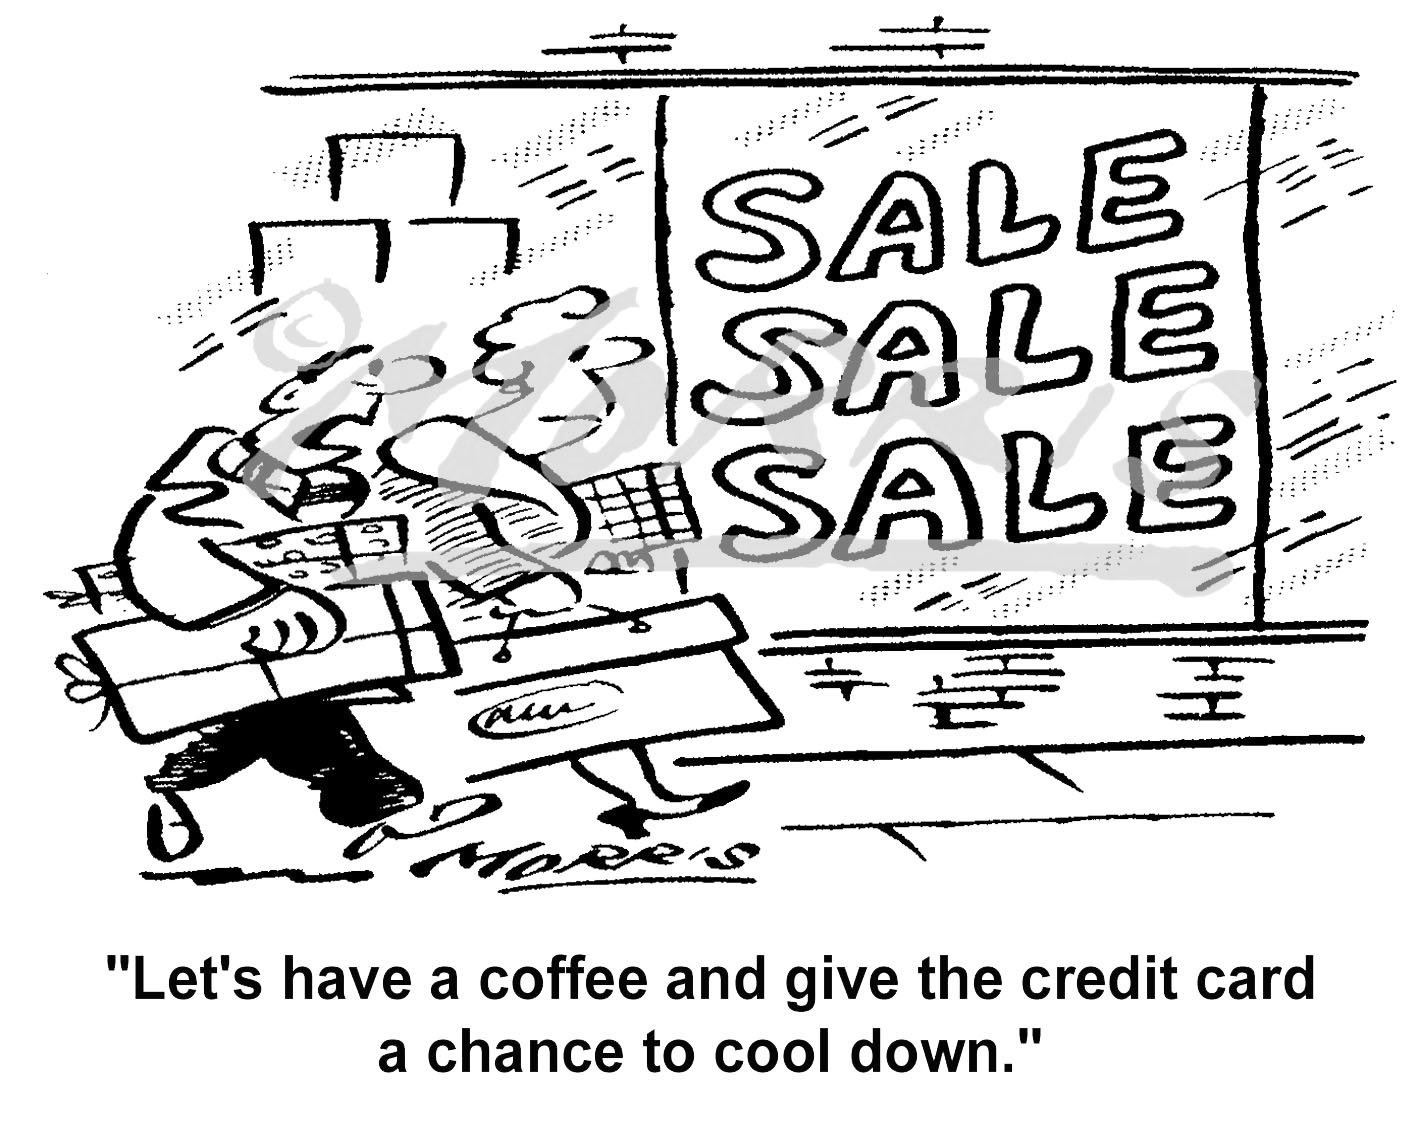 Credit card shopping cartoon – Ref: 4890bw